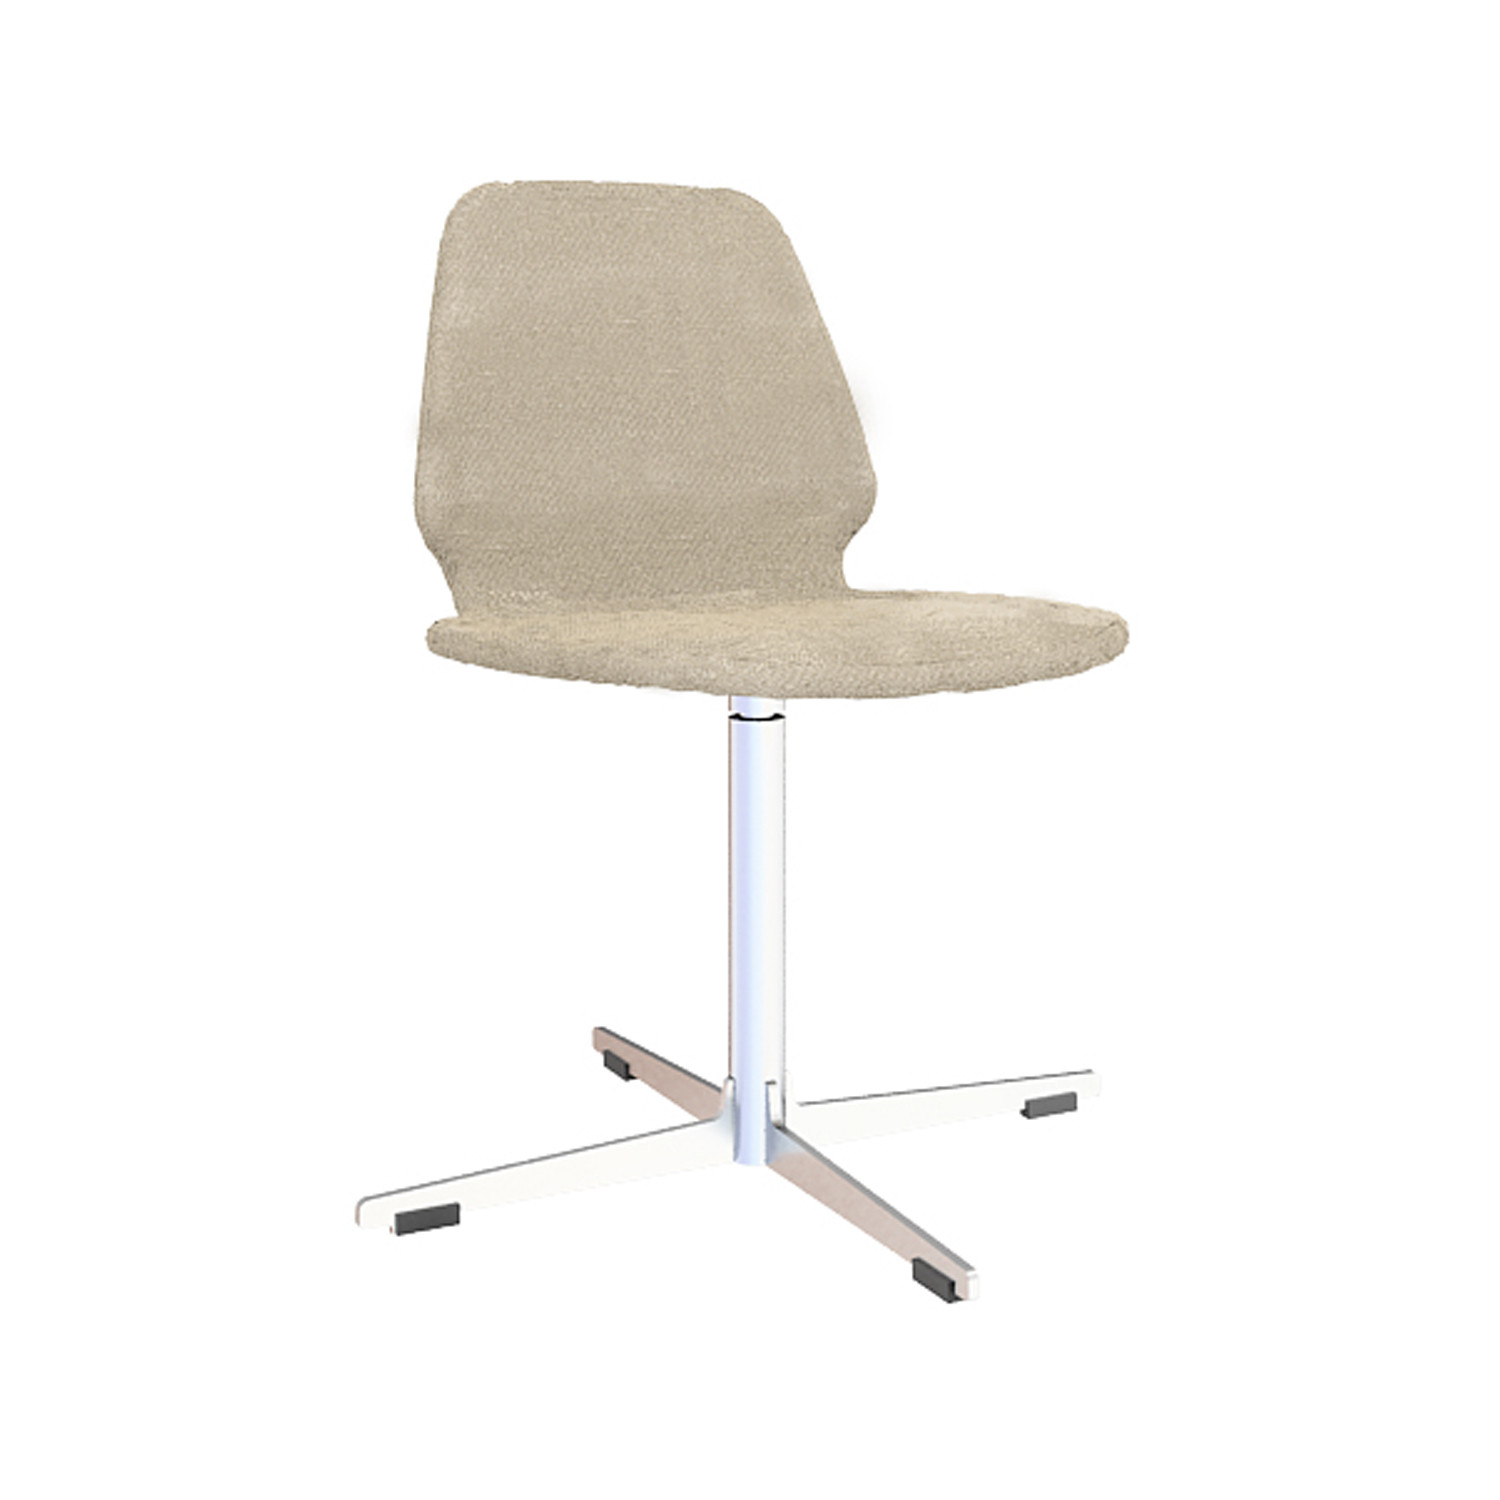 Tindari Cross - Self Adjusting Swivel Chair